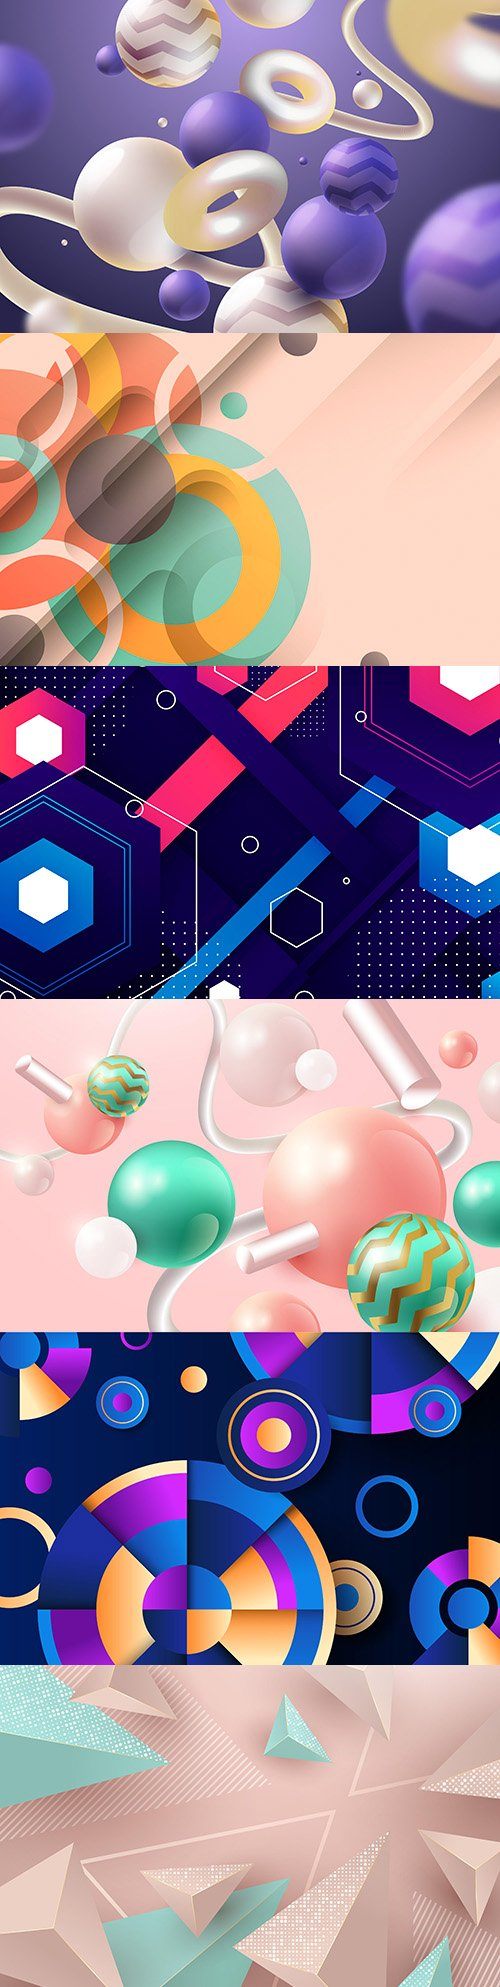 Abstract background with geometric shapes and spheres